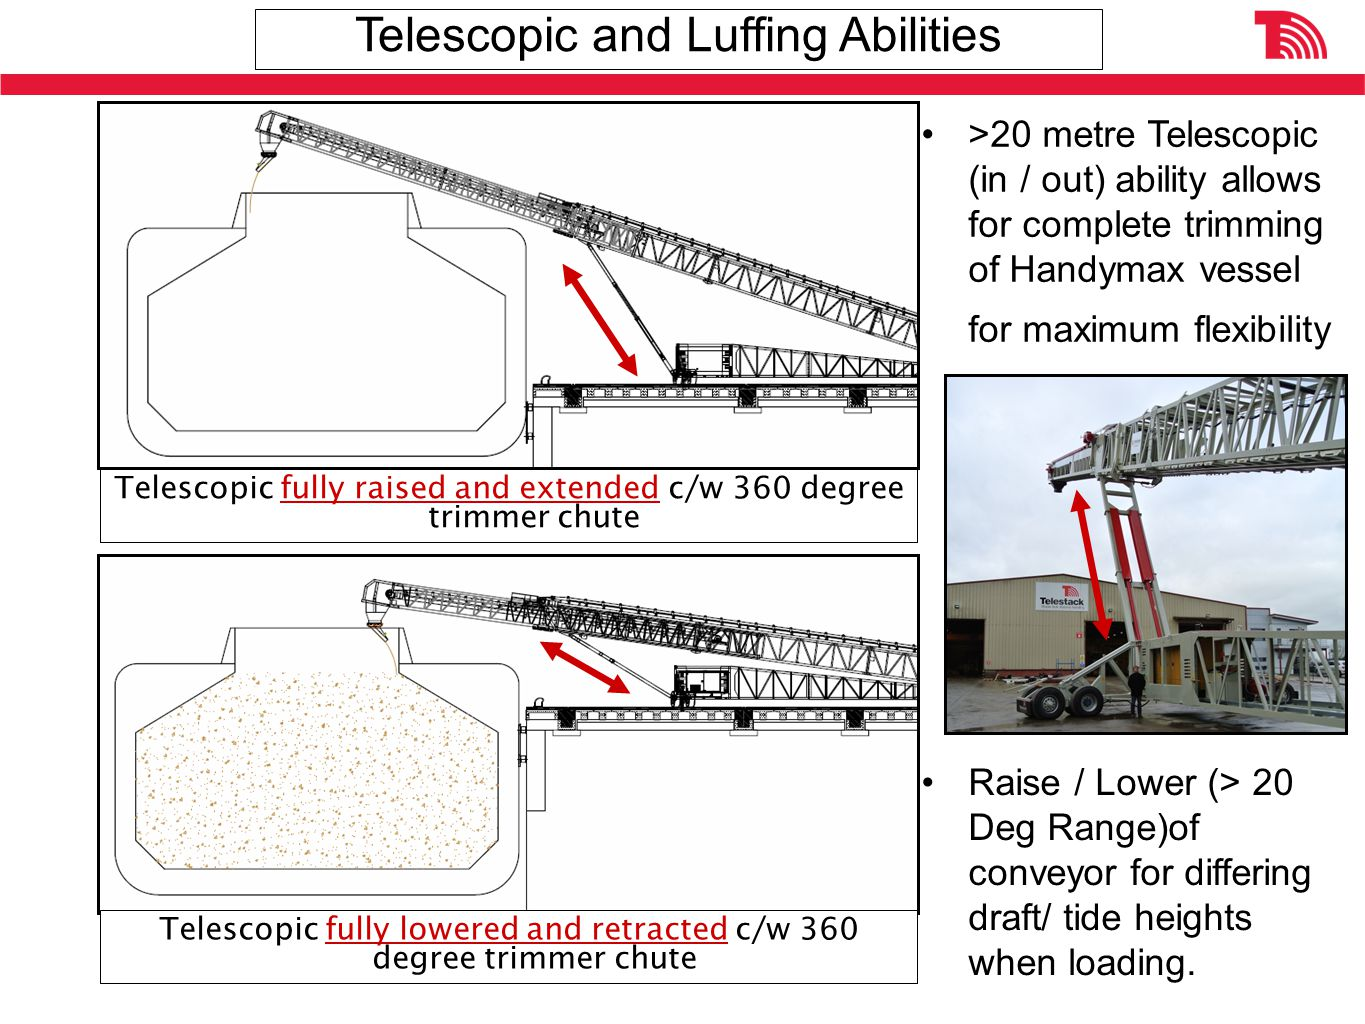 >20 metre Telescopic (in / out) ability allows for complete trimming of Handymax vessel for maximum flexibility Telescopic fully raised and extended c/w 360 degree trimmer chute Telescopic fully lowered and retracted c/w 360 degree trimmer chute Raise / Lower (> 20 Deg Range)of conveyor for differing draft/ tide heights when loading.